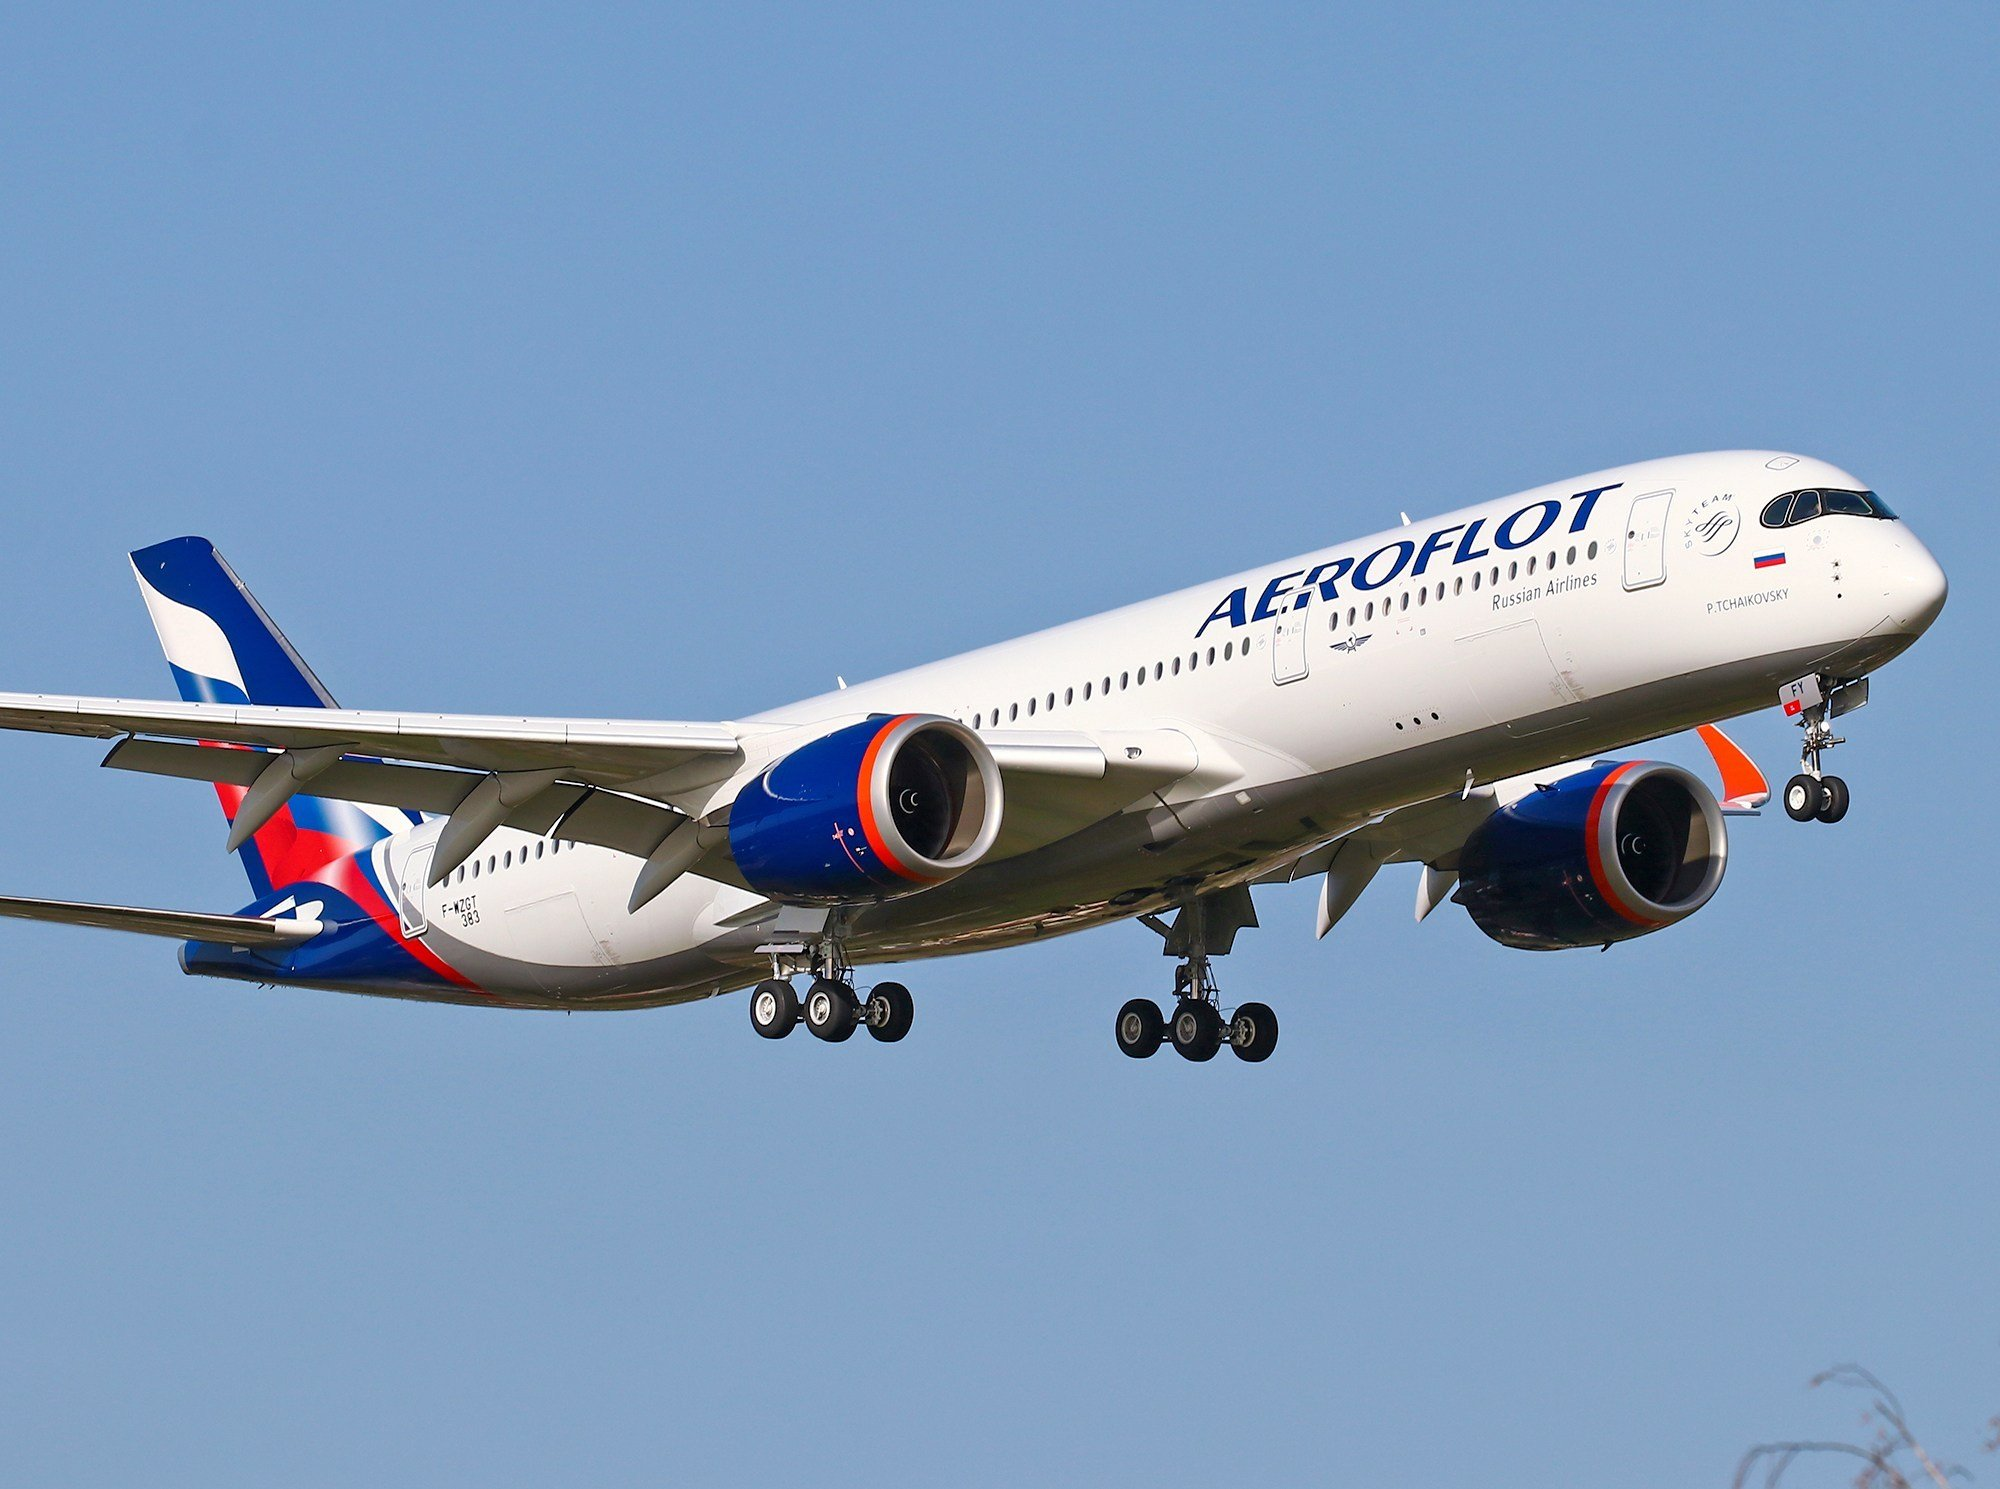 Russian Aeroflot resumes flights to Nice, France